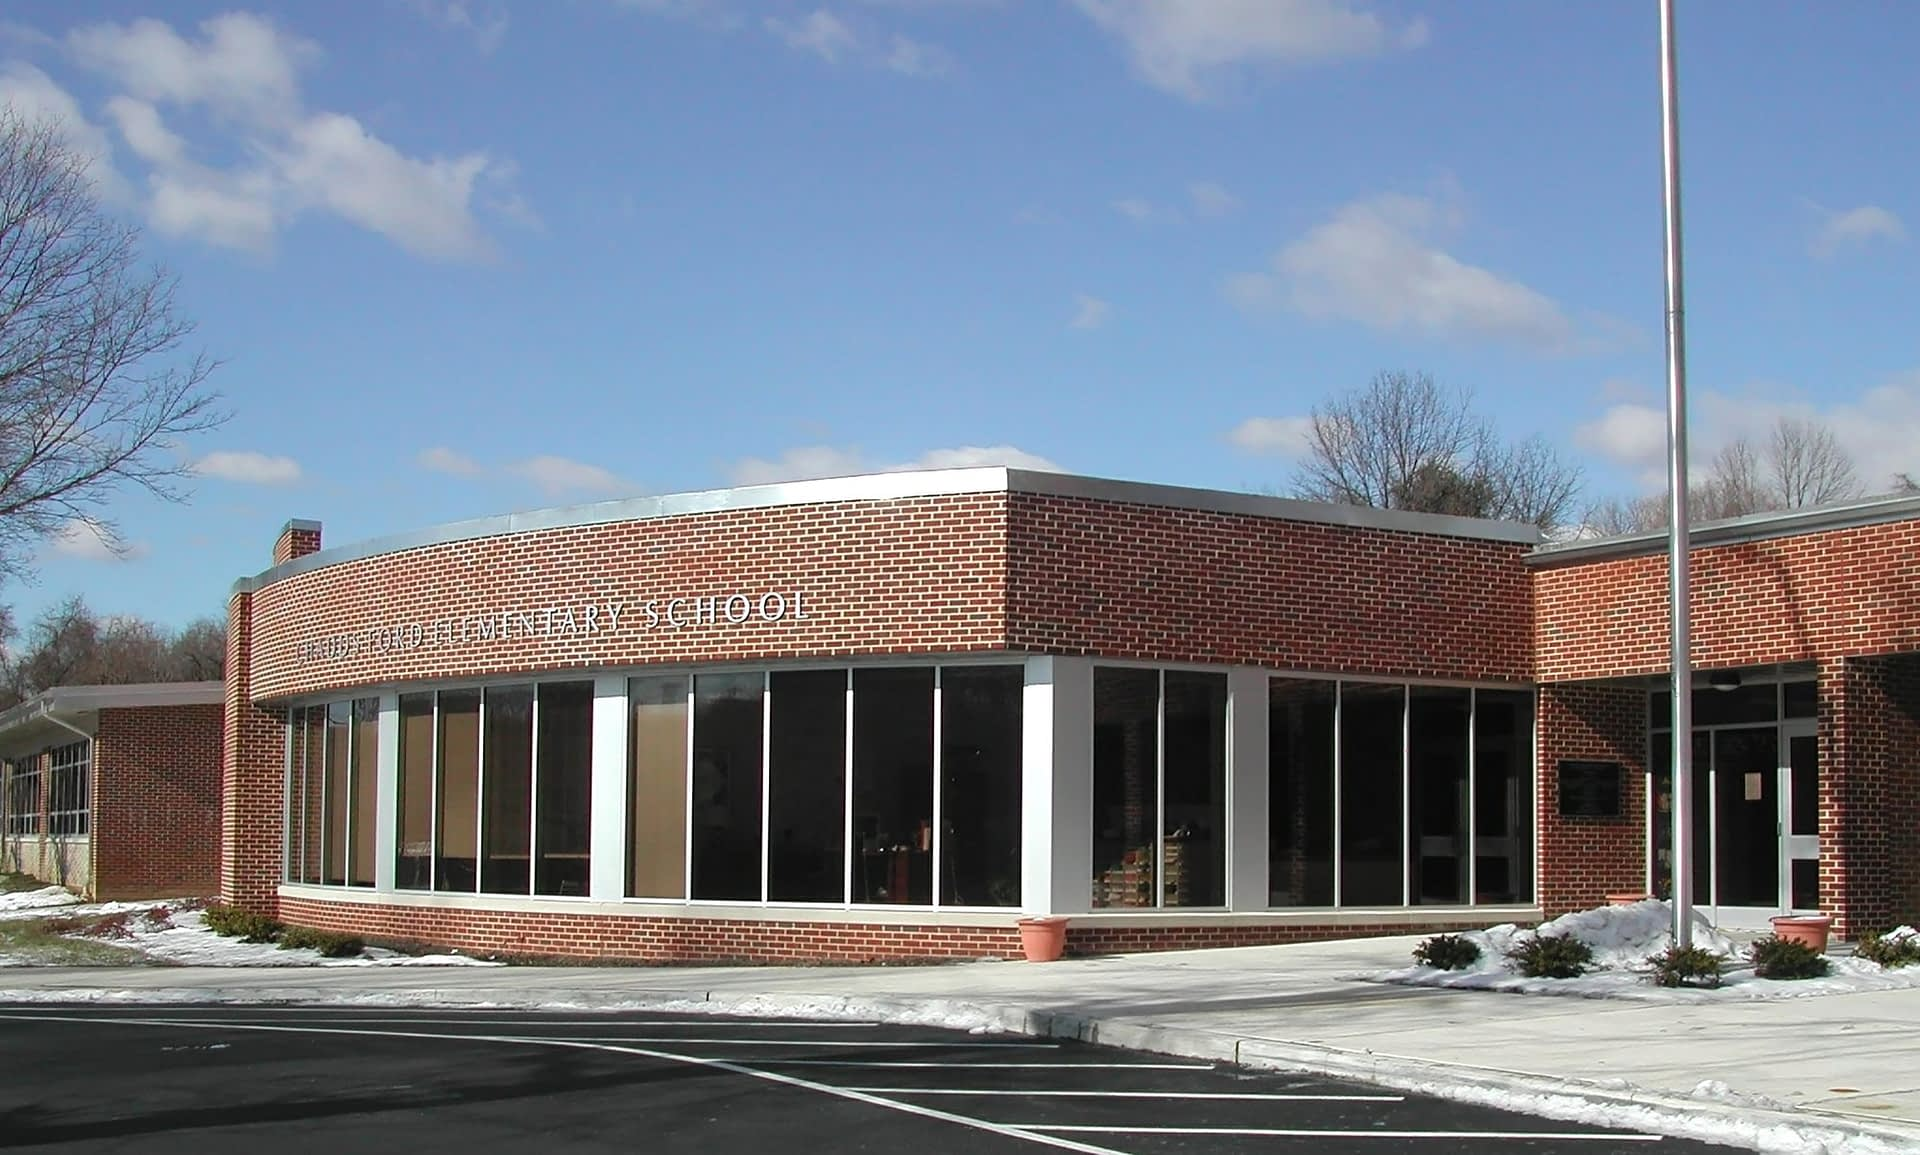 Chadds Ford Elementary School